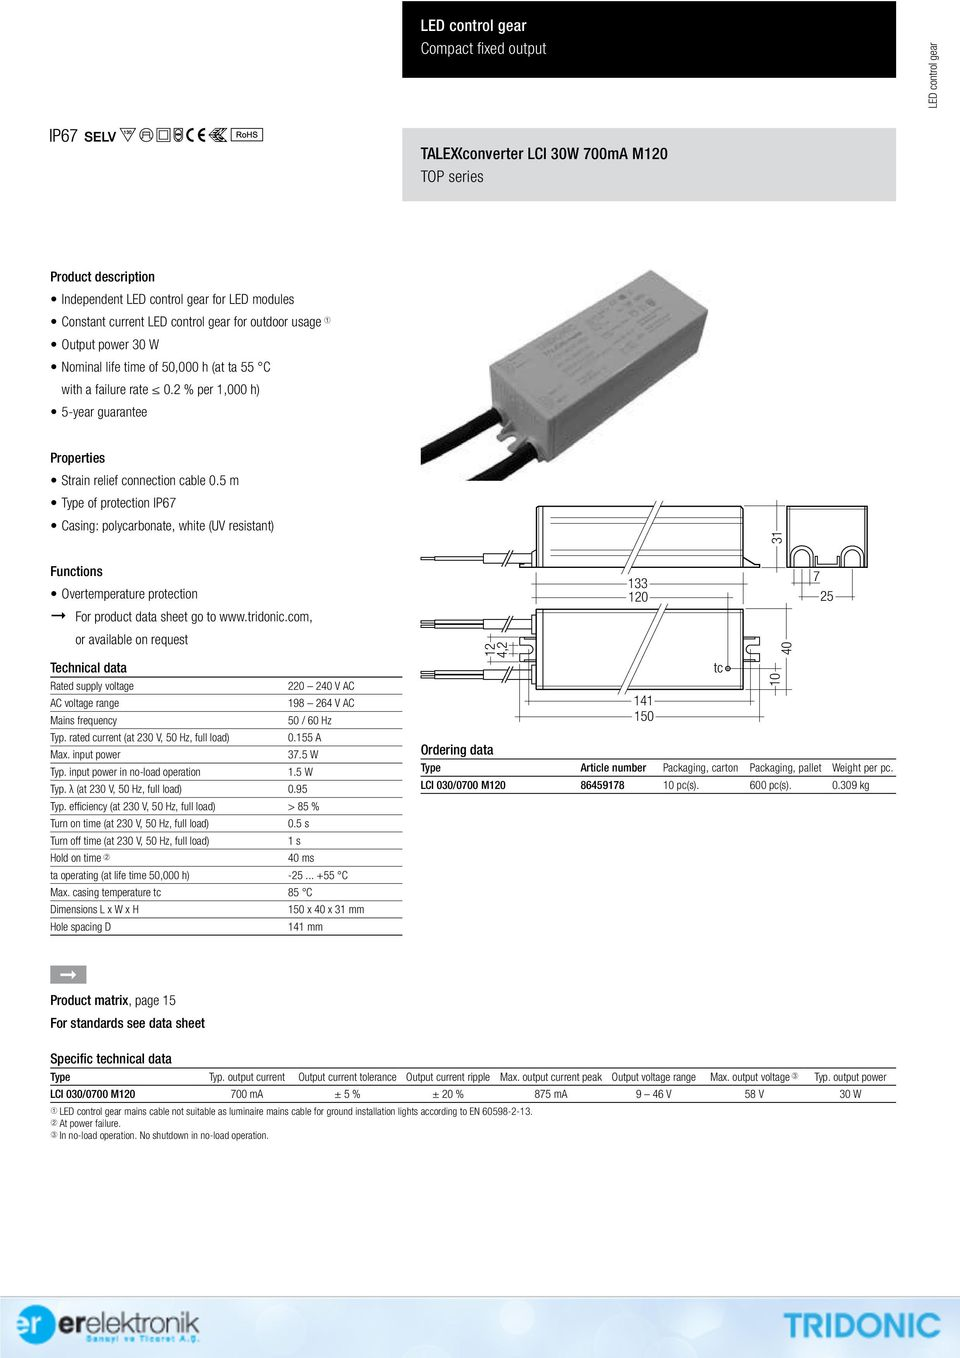 5 m of protection IP67 Casing: polycarbonate, white (UV resistant) Functions Overtemperature protection For product data sheet go to www.tridonic.com, AC voltage range Typ.